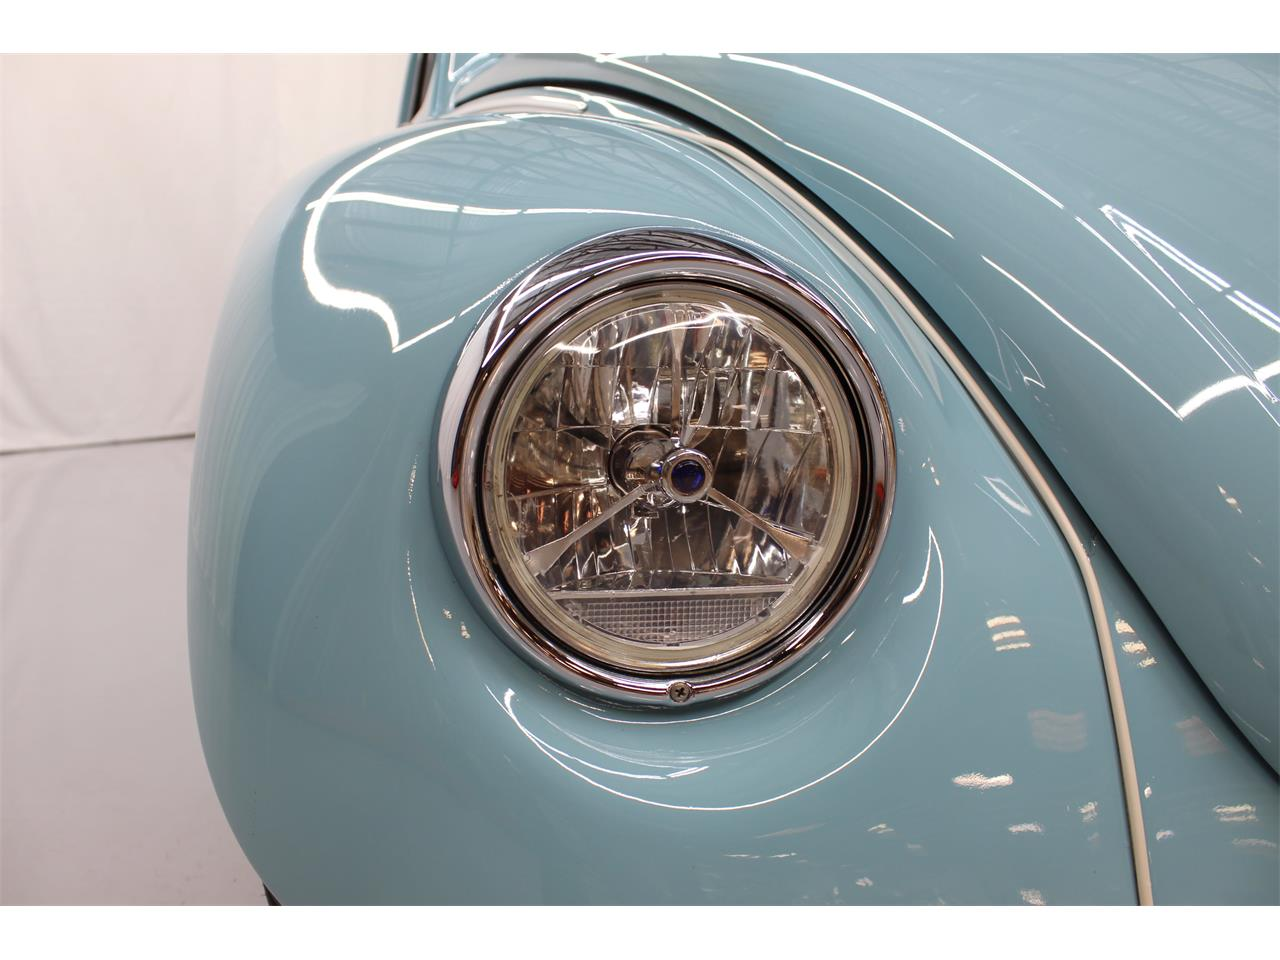 1974 Volkswagen Beetle for sale in Christiansburg, VA – photo 67